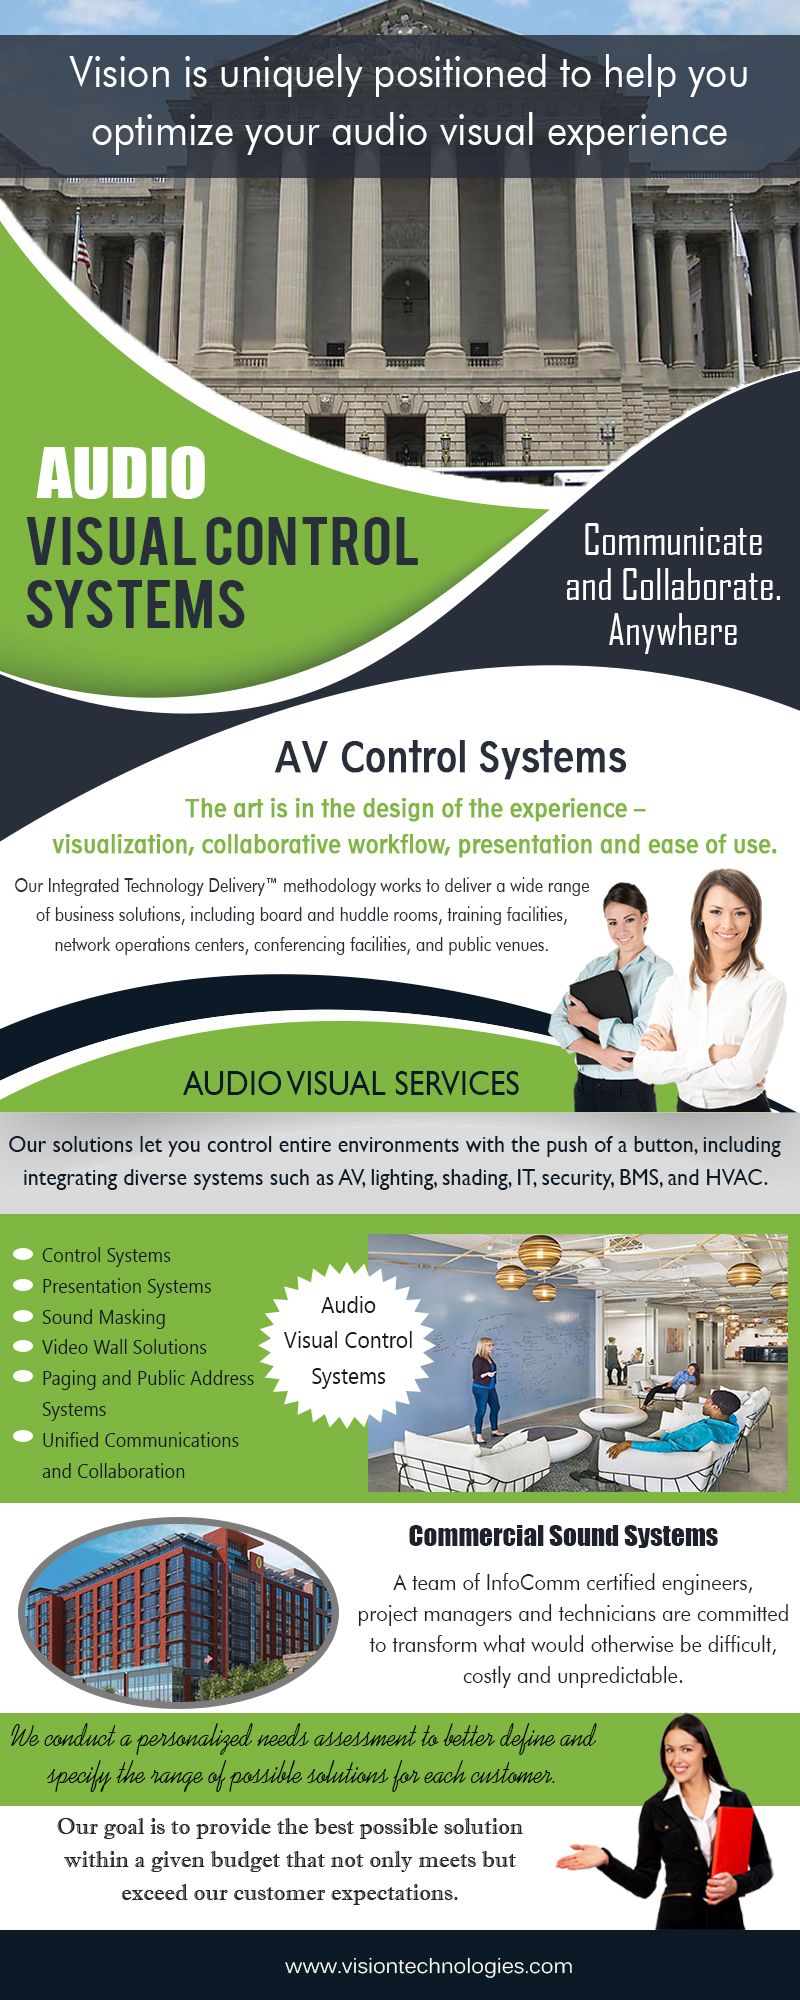 AV Control Systems, Audio Visual Control Systems